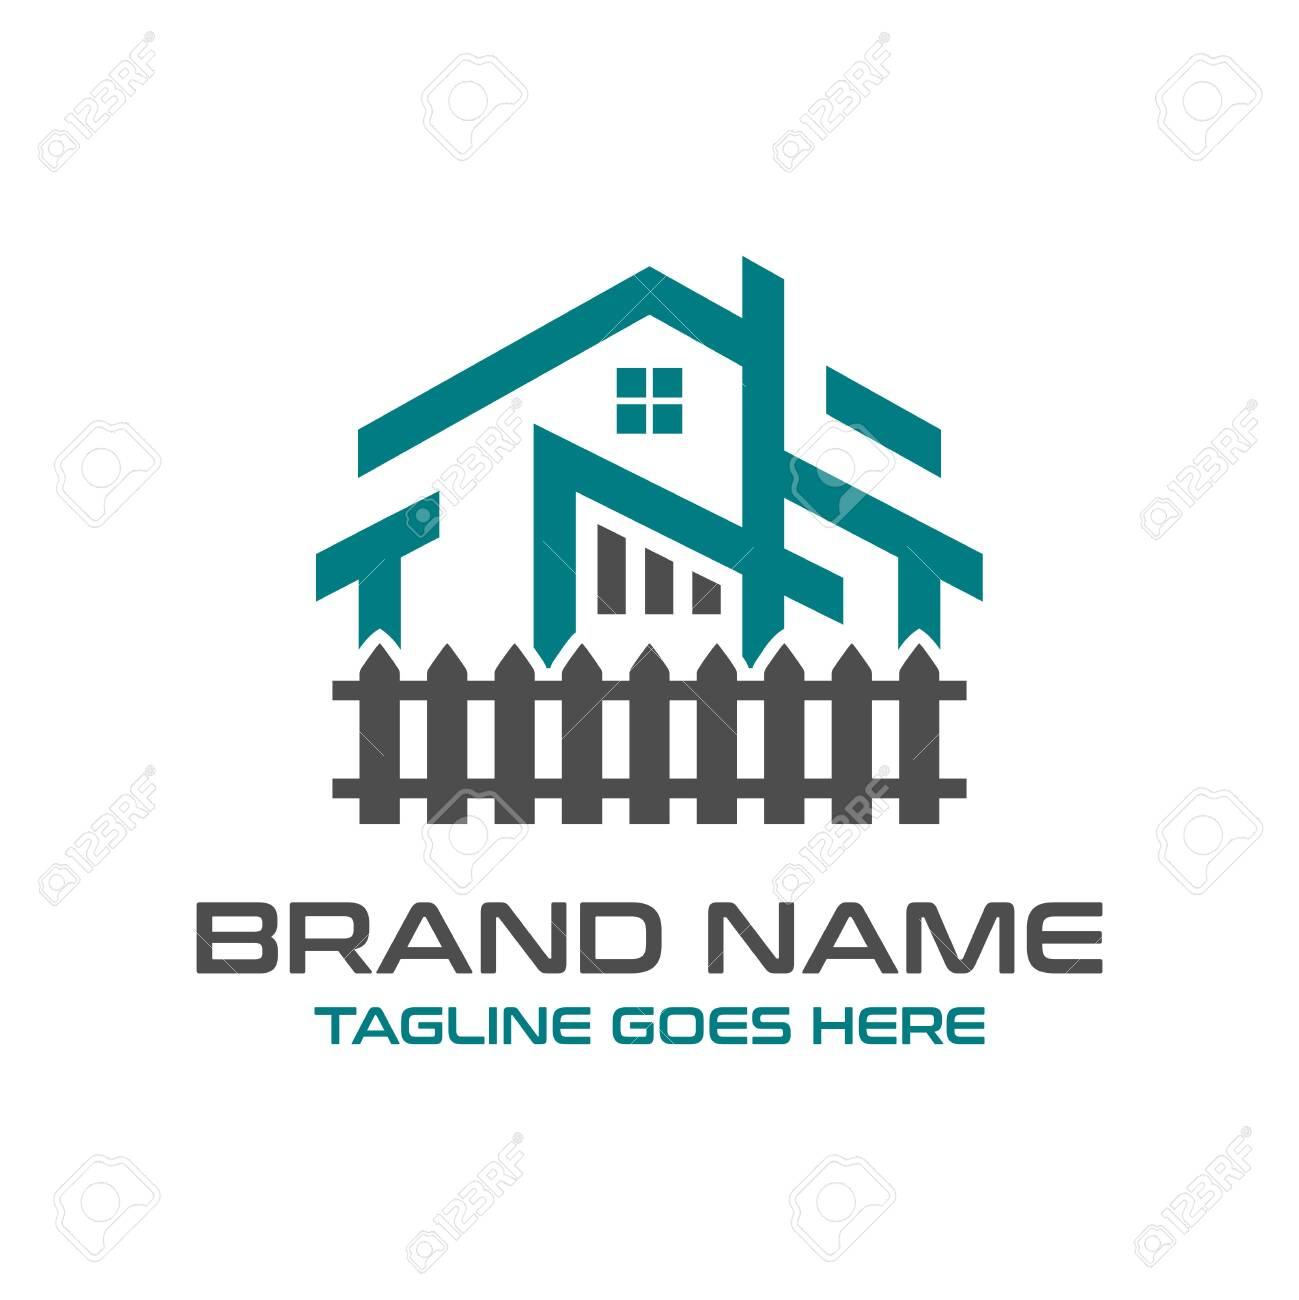 home logo design and hedgerows - 143745191